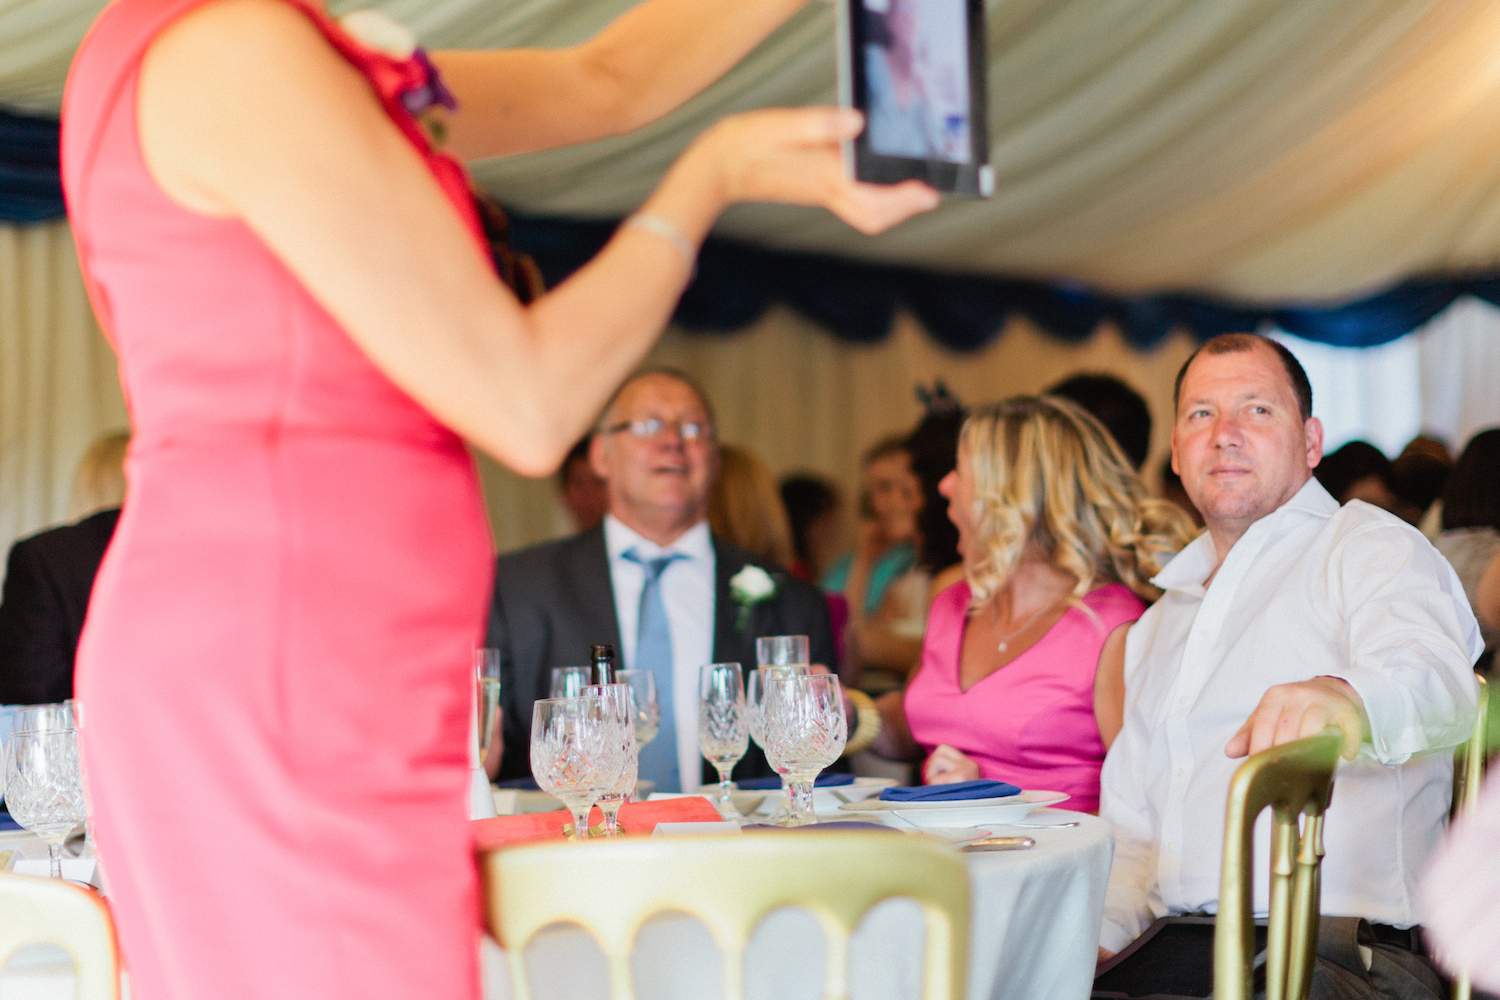 Skype-Wedding-Ongar-Essex2.jpg